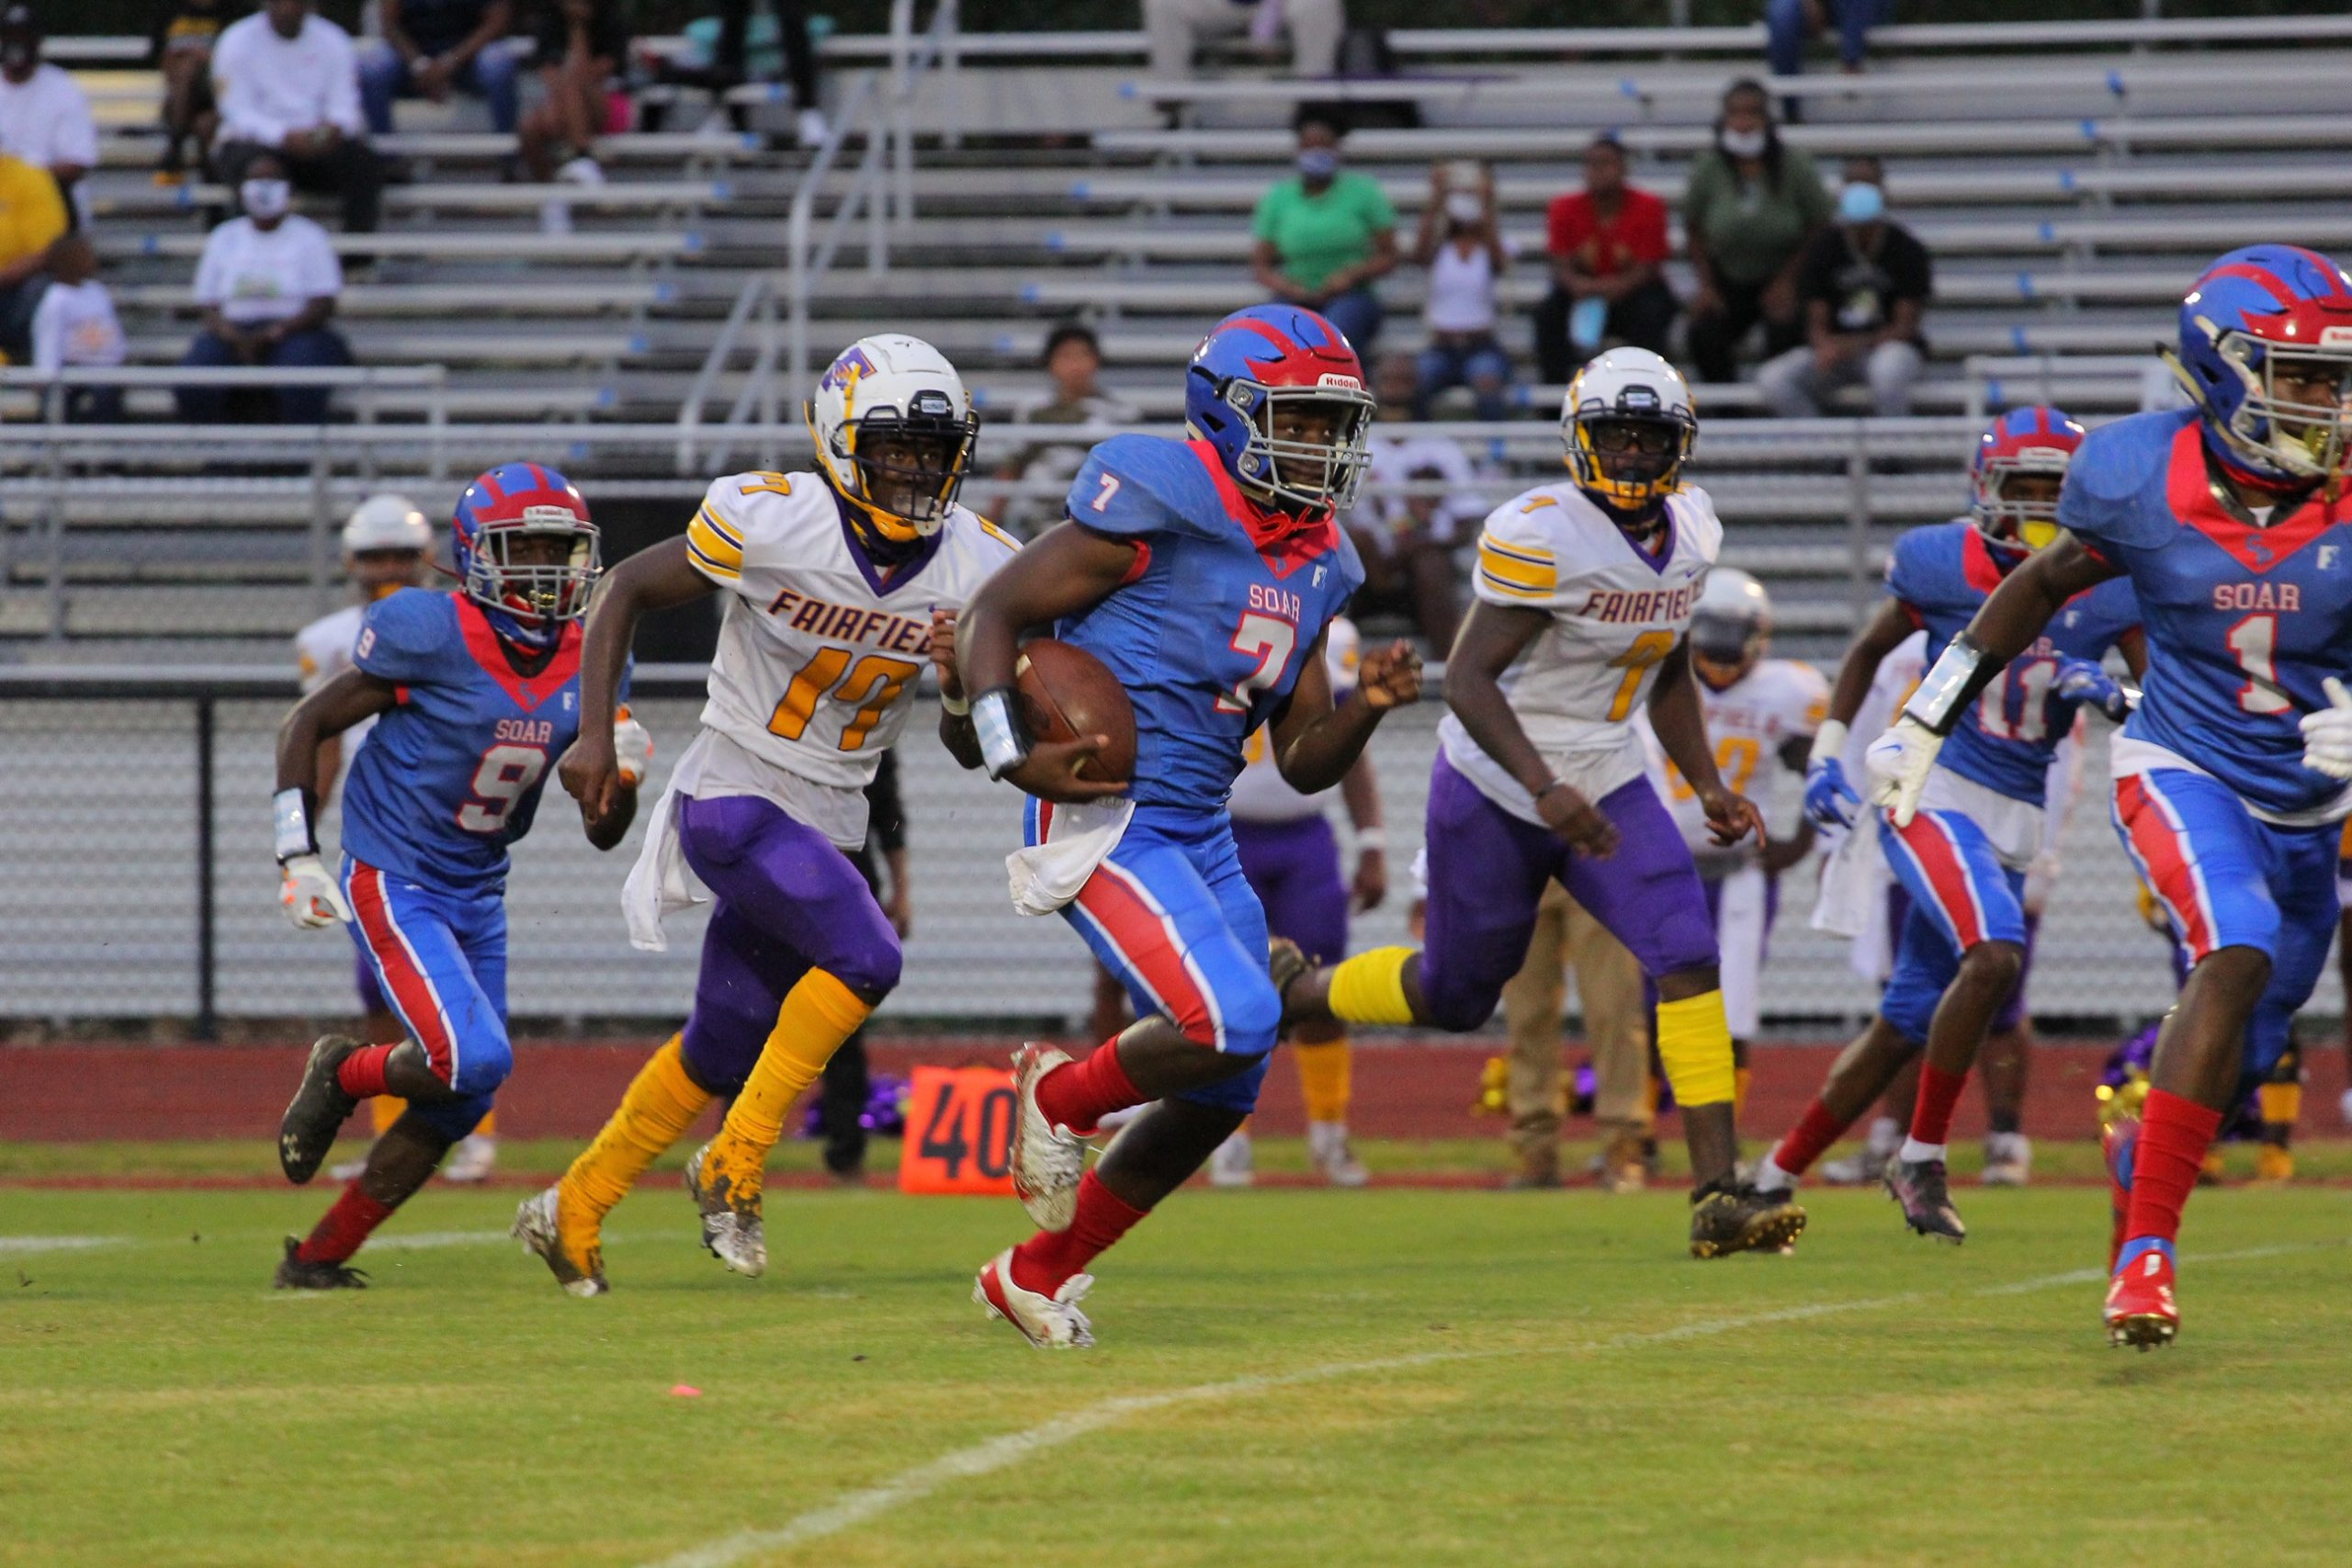 Center Point fumbles lead at home, falls to 1-1